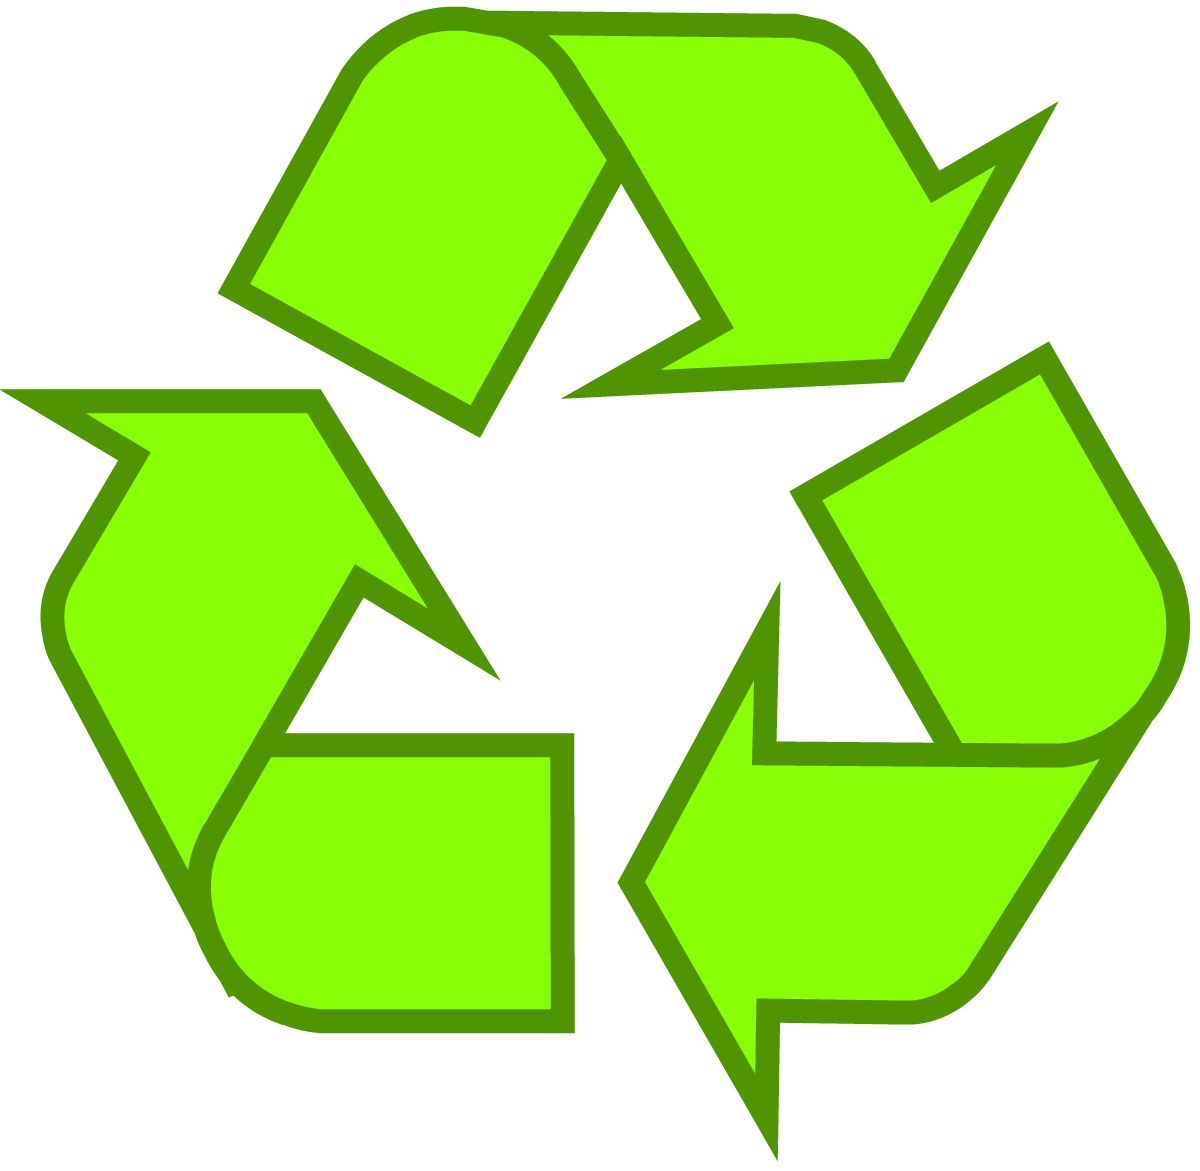 Garbage clipart buang. Download recycling symbol the